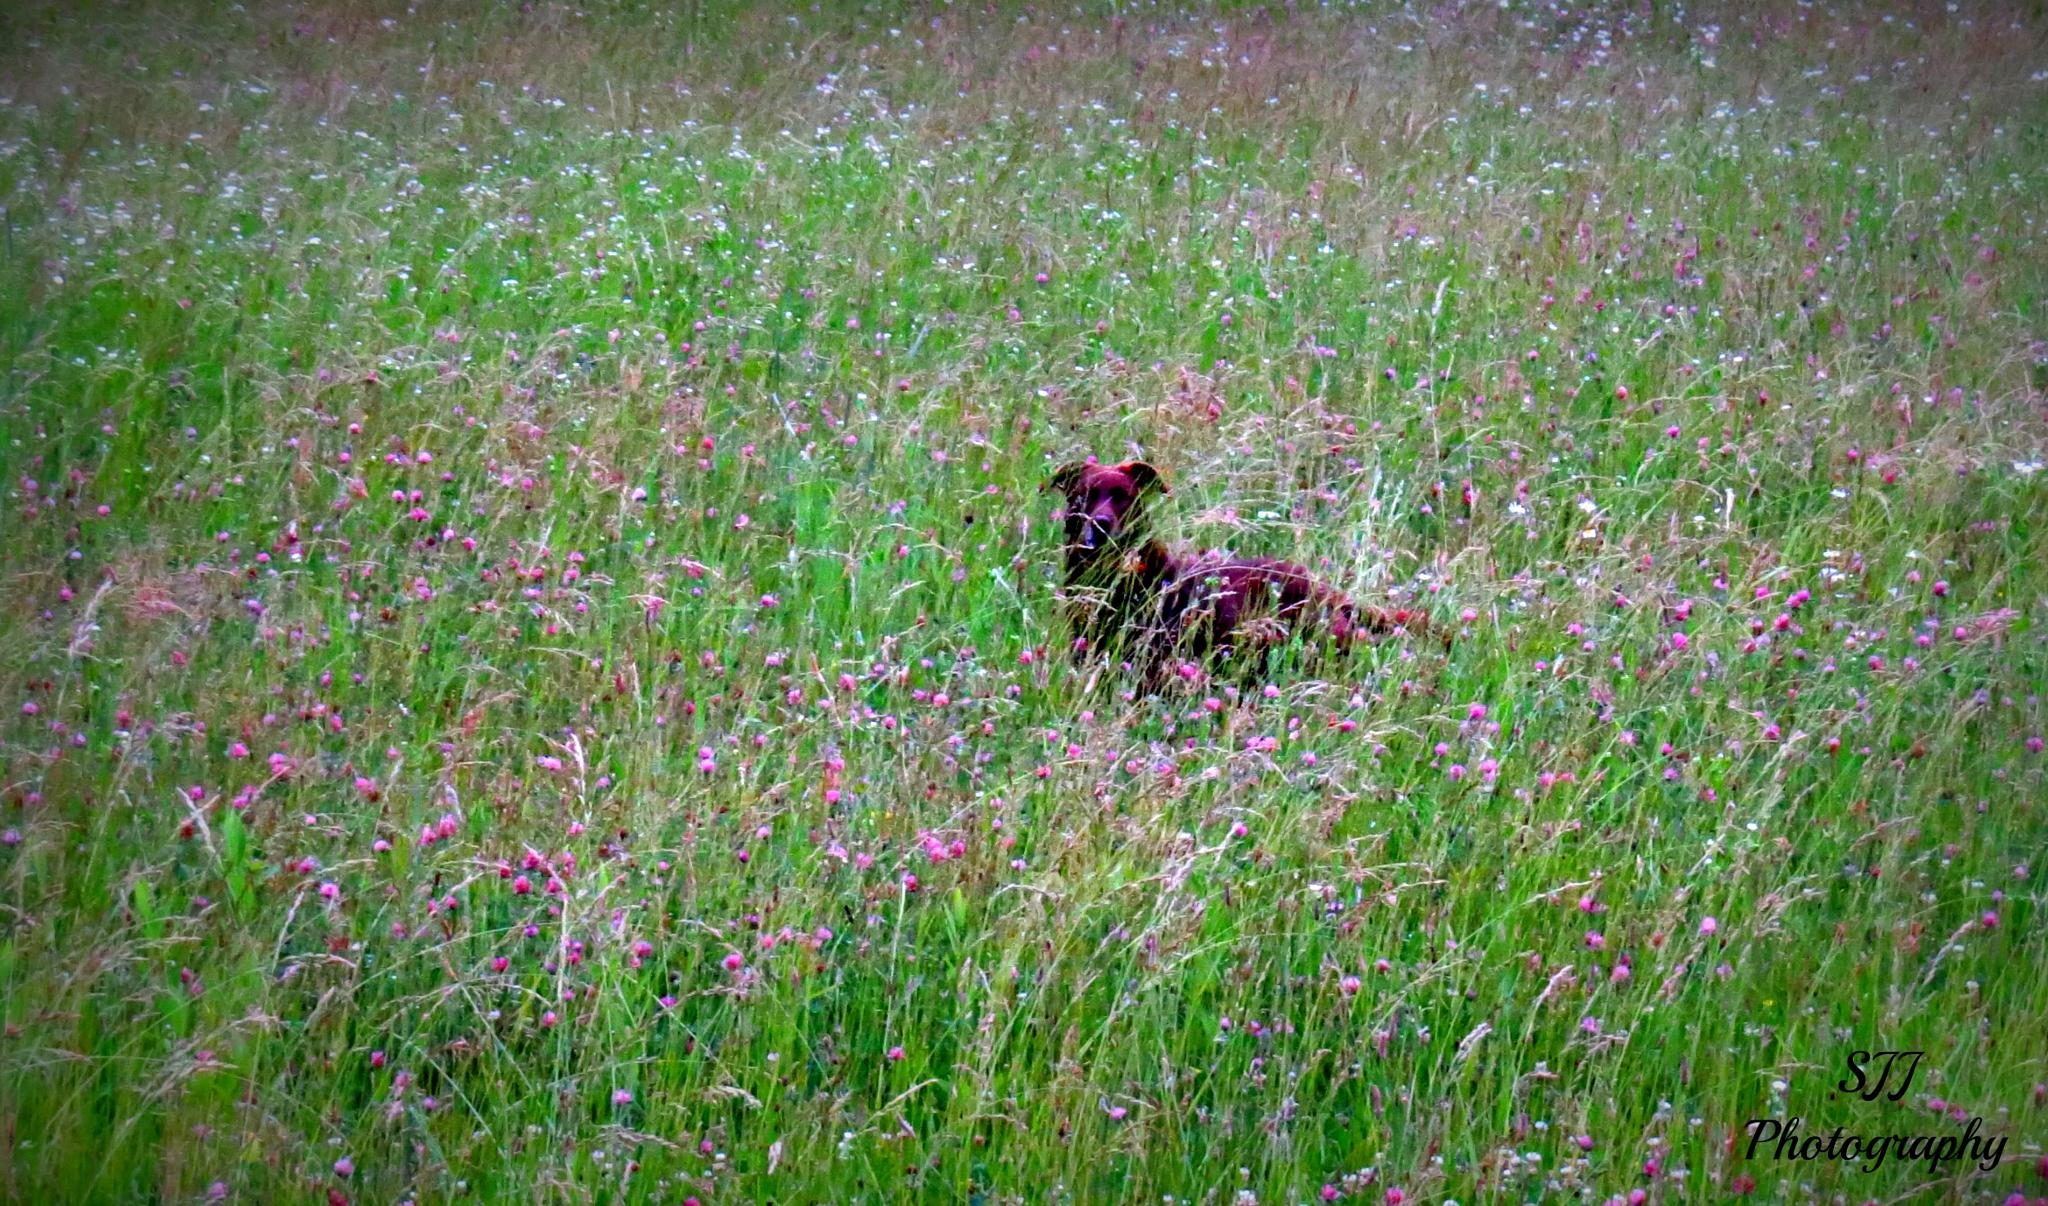 Lab in the Grass by sarahjones1624